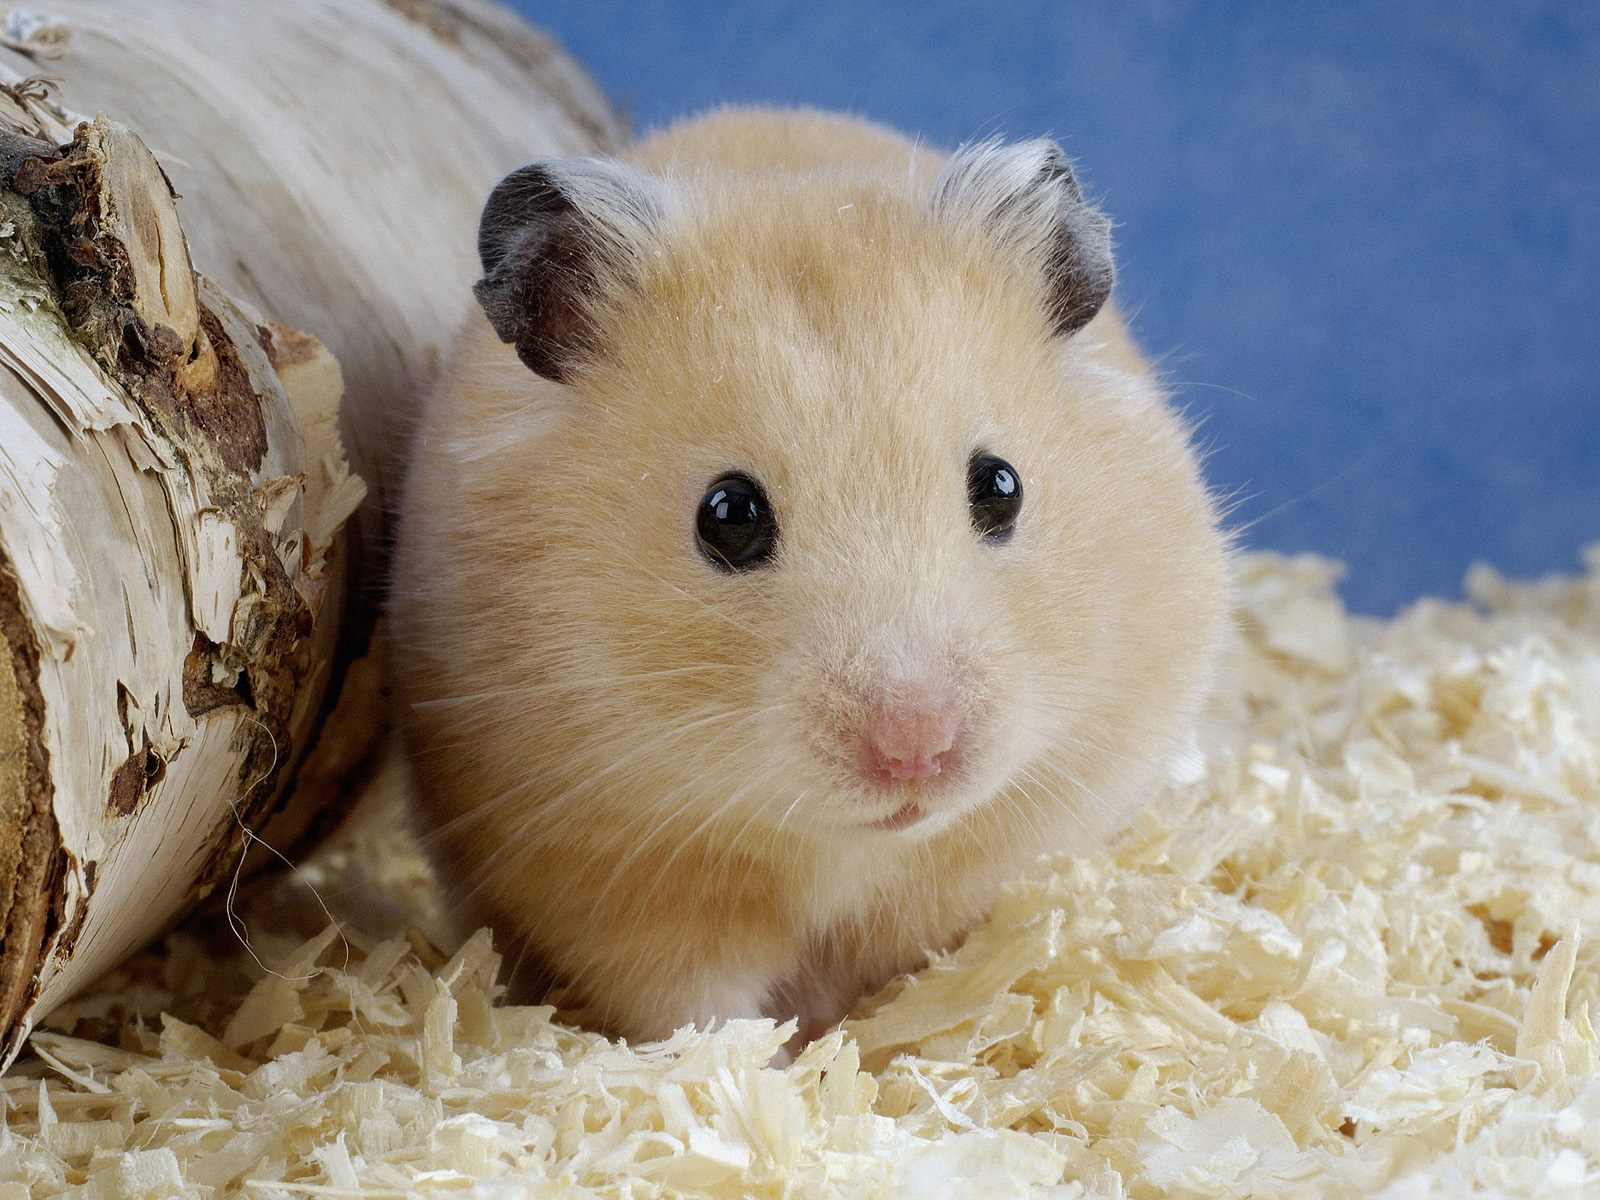 Hamster | The Biggest Animals Kingdom